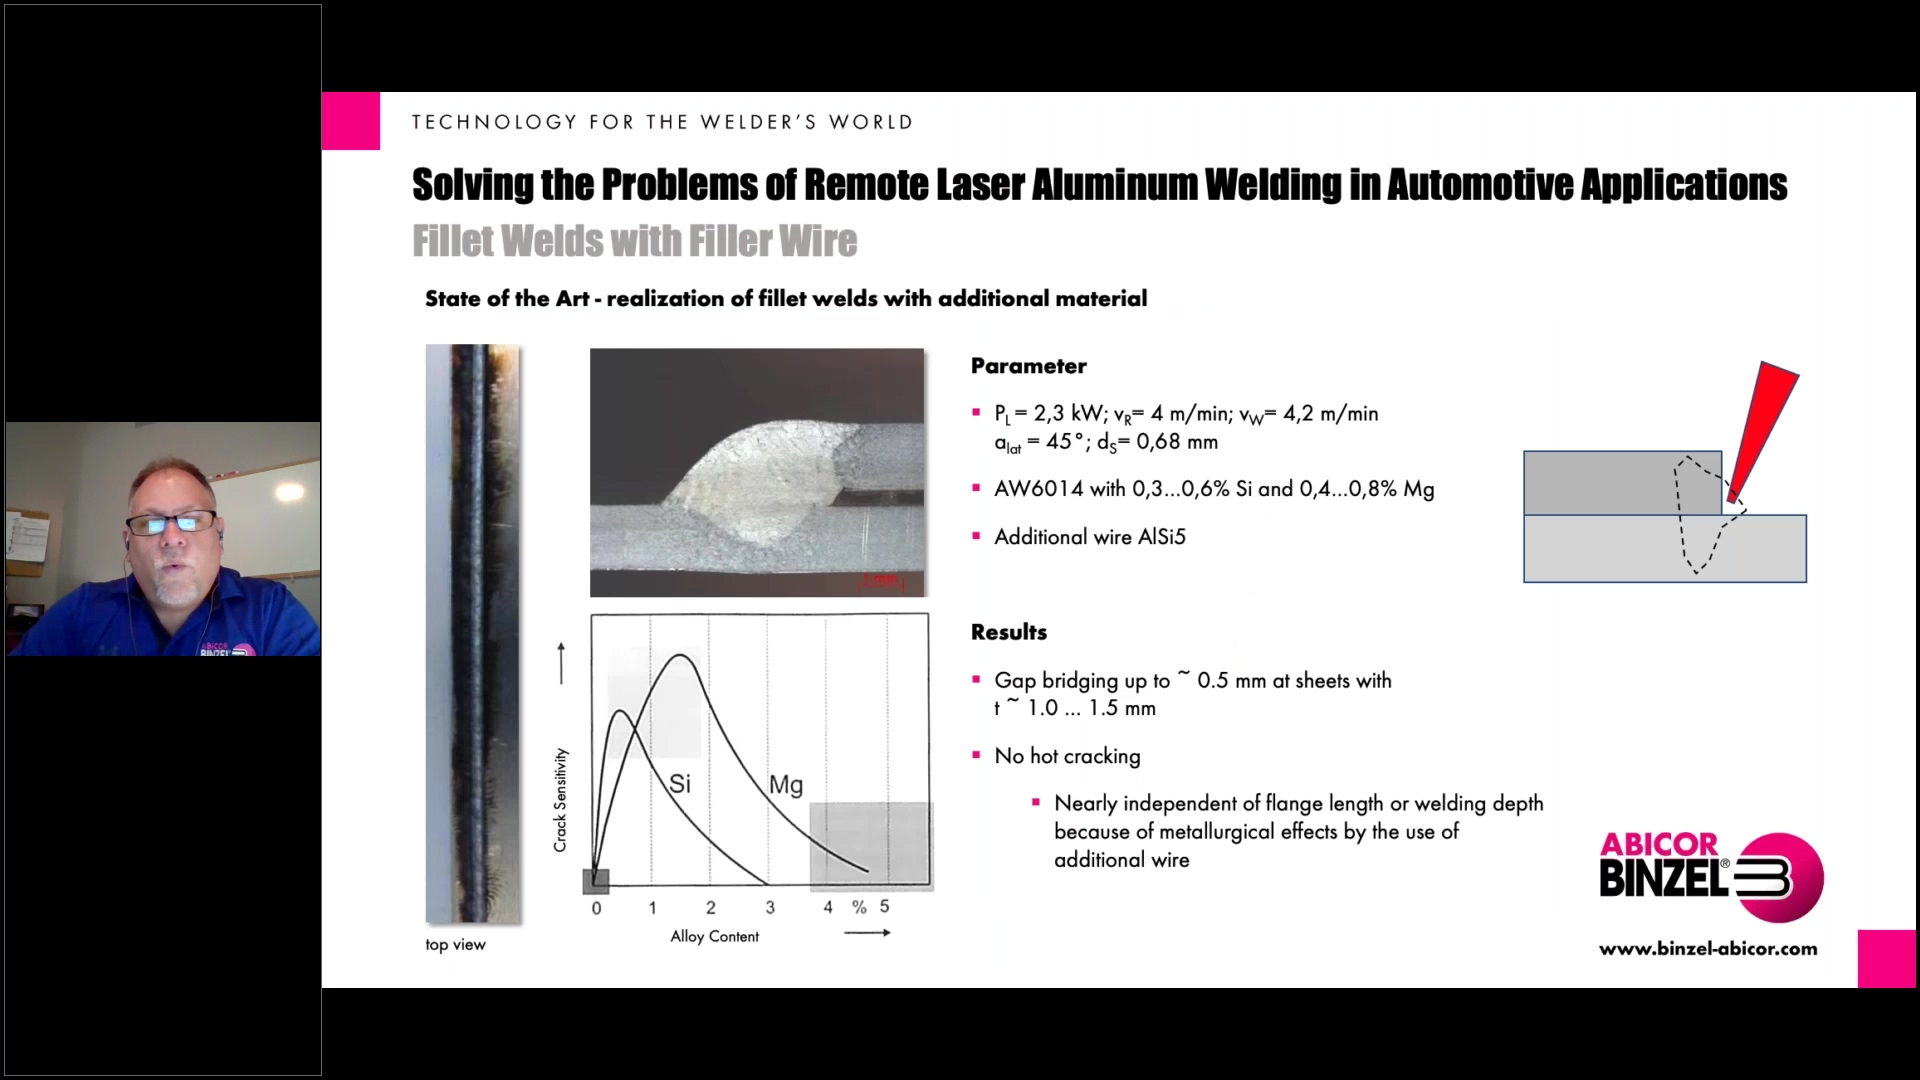 Solving the Problems of Remote Laser Aluminum Welding in Automotive Applications